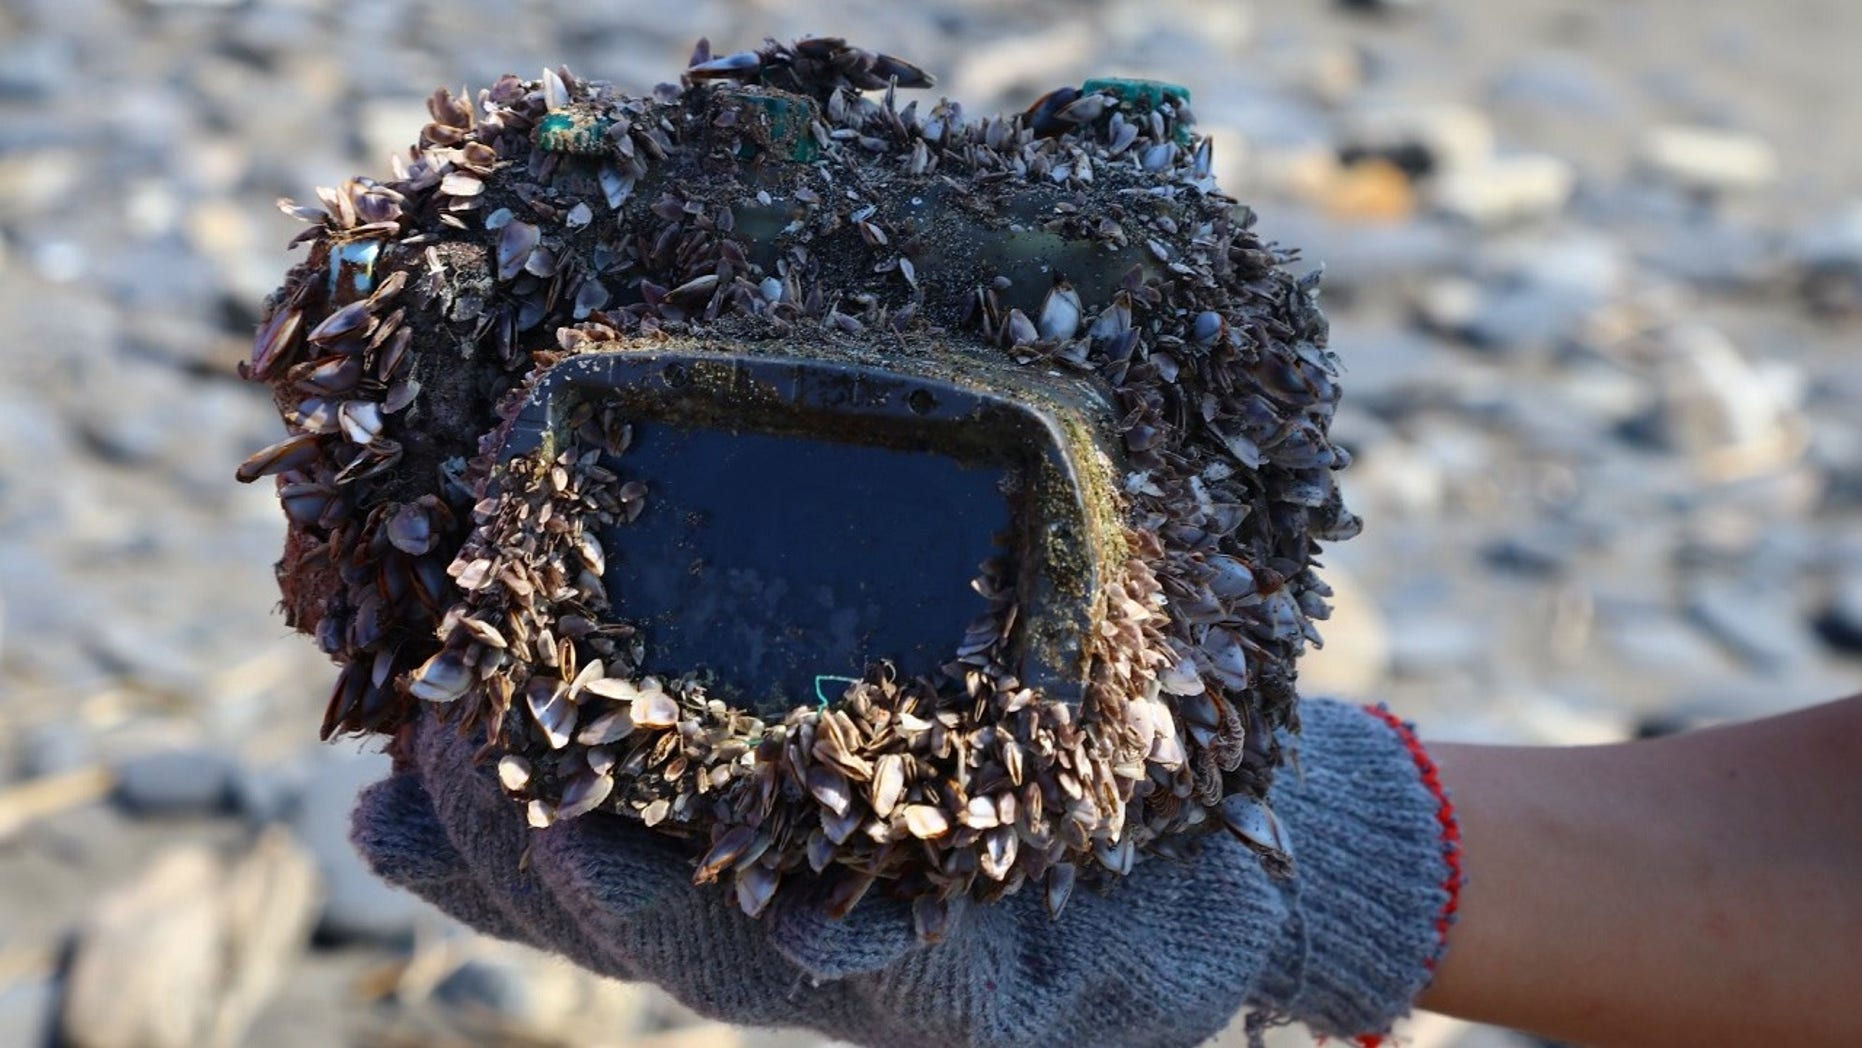 The camera was returned to its owner more than two years after it was dropped in the ocean.